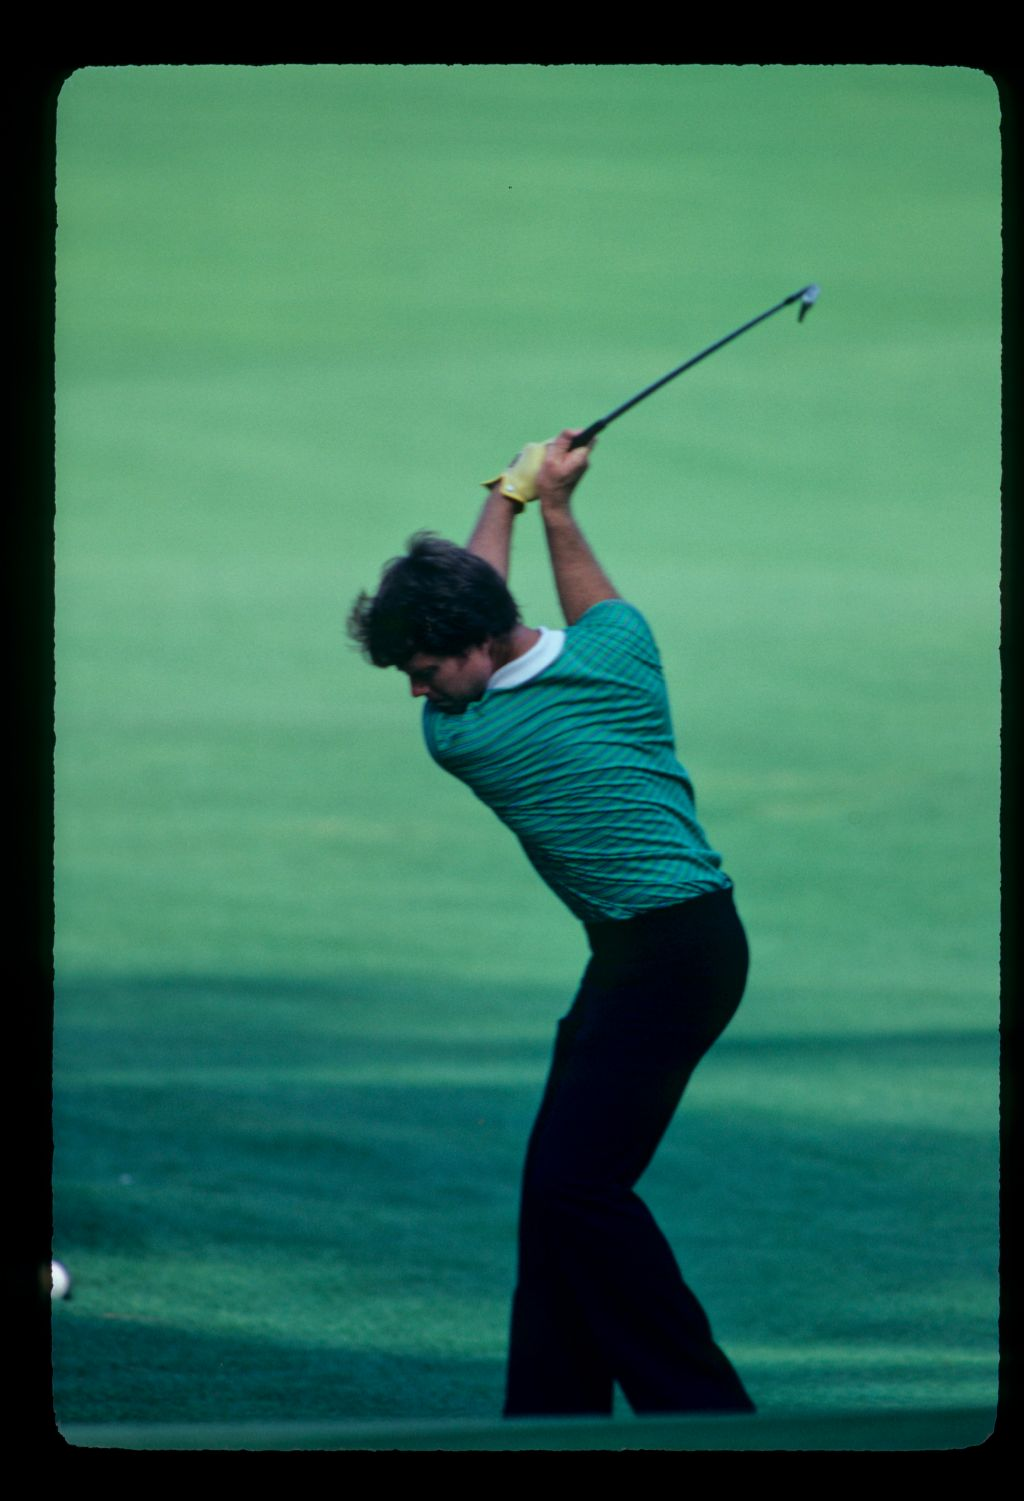 The fully loaded backswing of Tom Watson on his way to winning the 1981 Masters